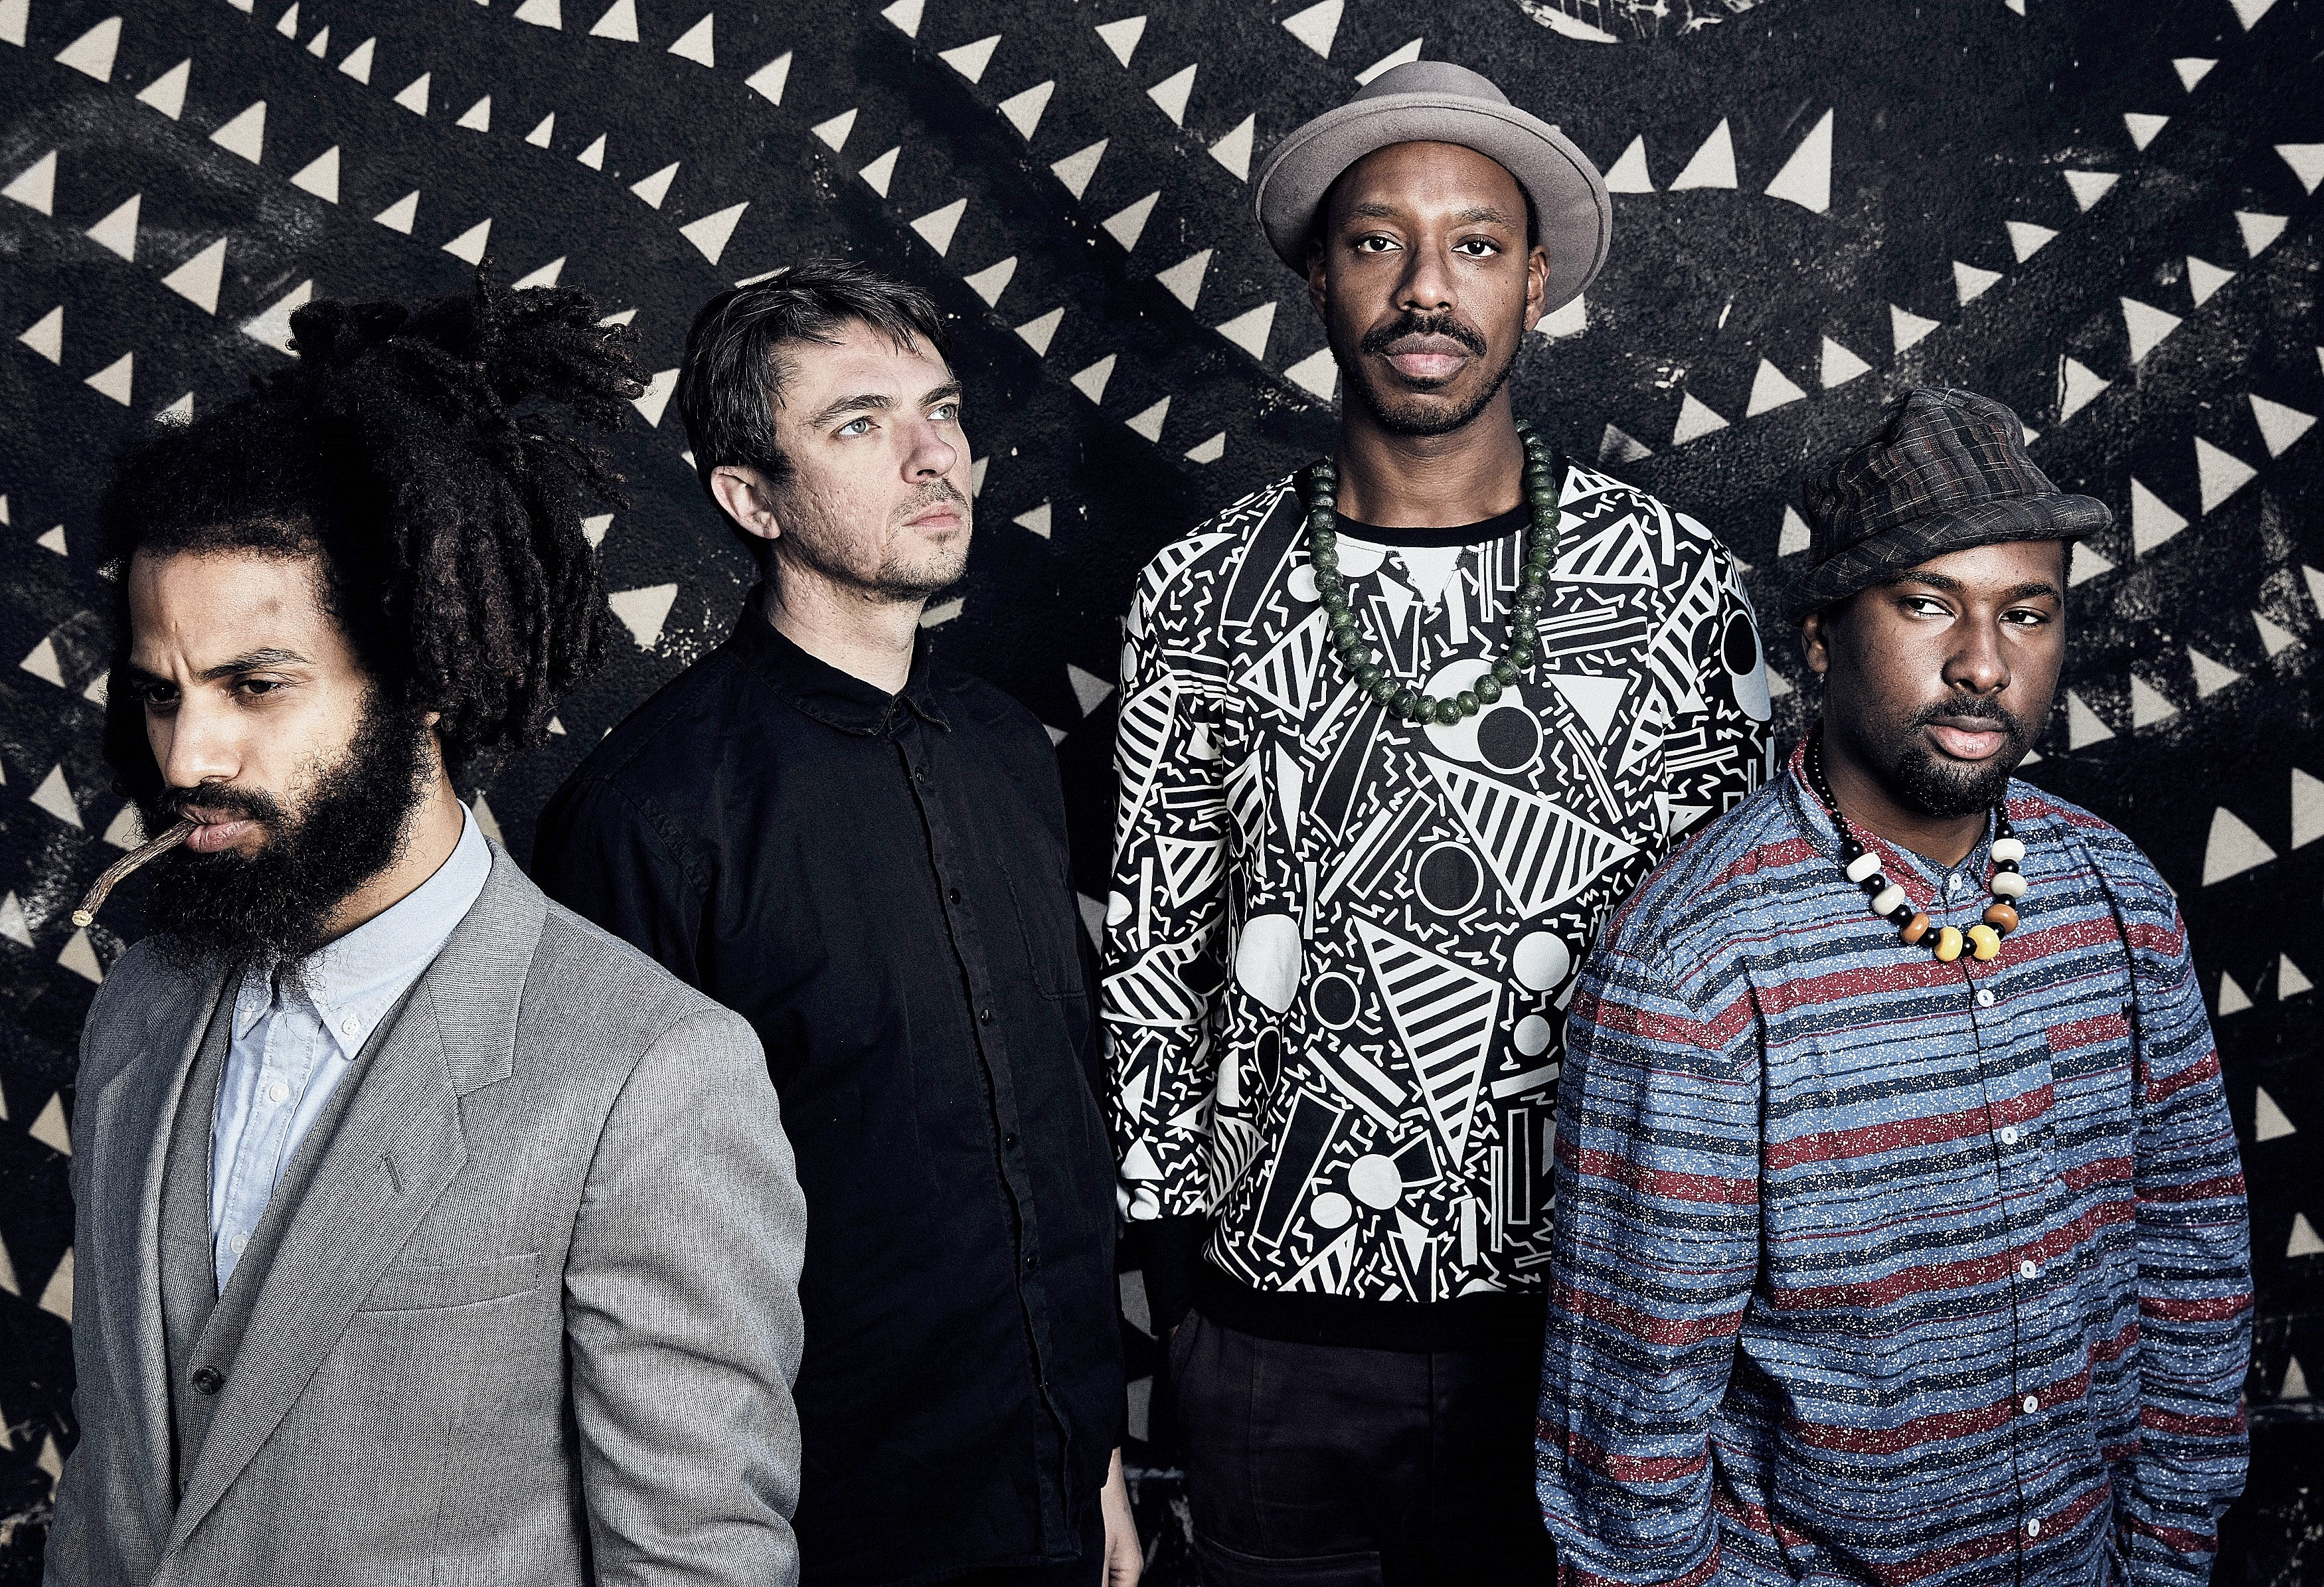 Shabaka Hutchings and Sons of Kemet